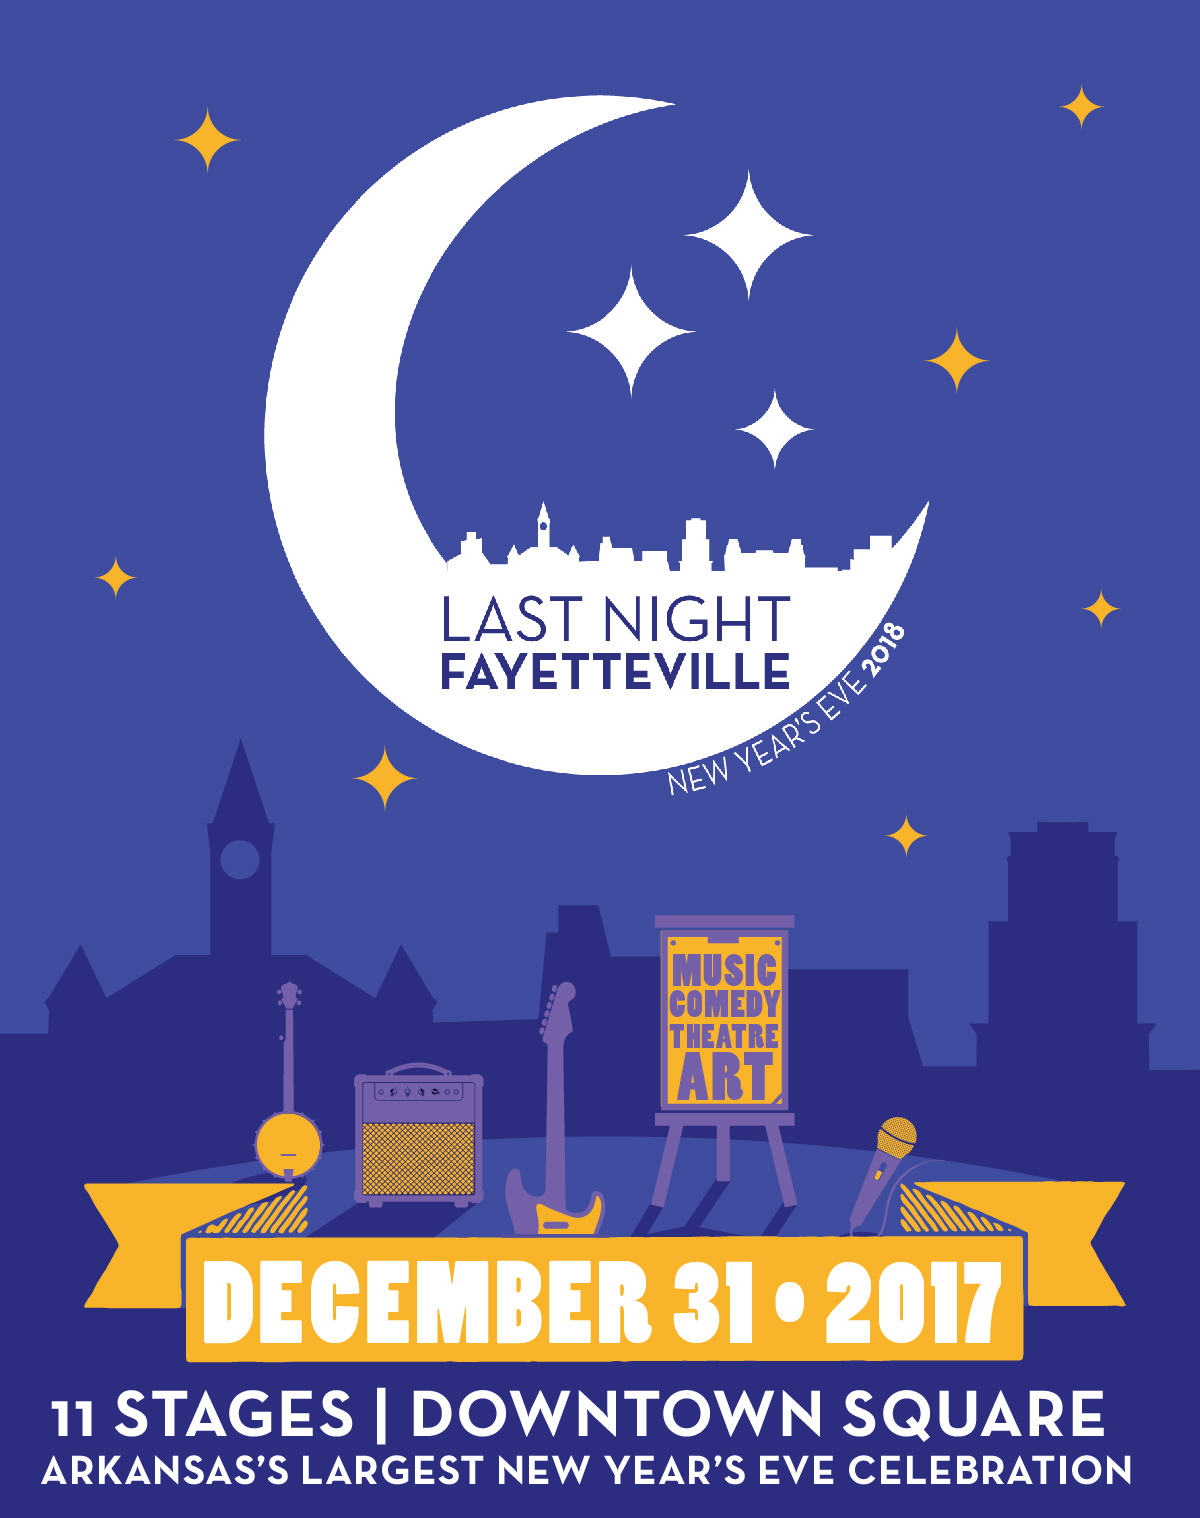 It's the largest New Year's Eve celebration in Arkansas!! Last Night Fayetteville is a performing arts festival taking place on December 31st on the downtown Fayetteville square featuring more than 100 local artists on ELEVEN stages. Countdown to 2018 with the world famous Hog Drop Countdown to Midnight & Fireworks, and party on into the New Year as the festival lasts until 2am!